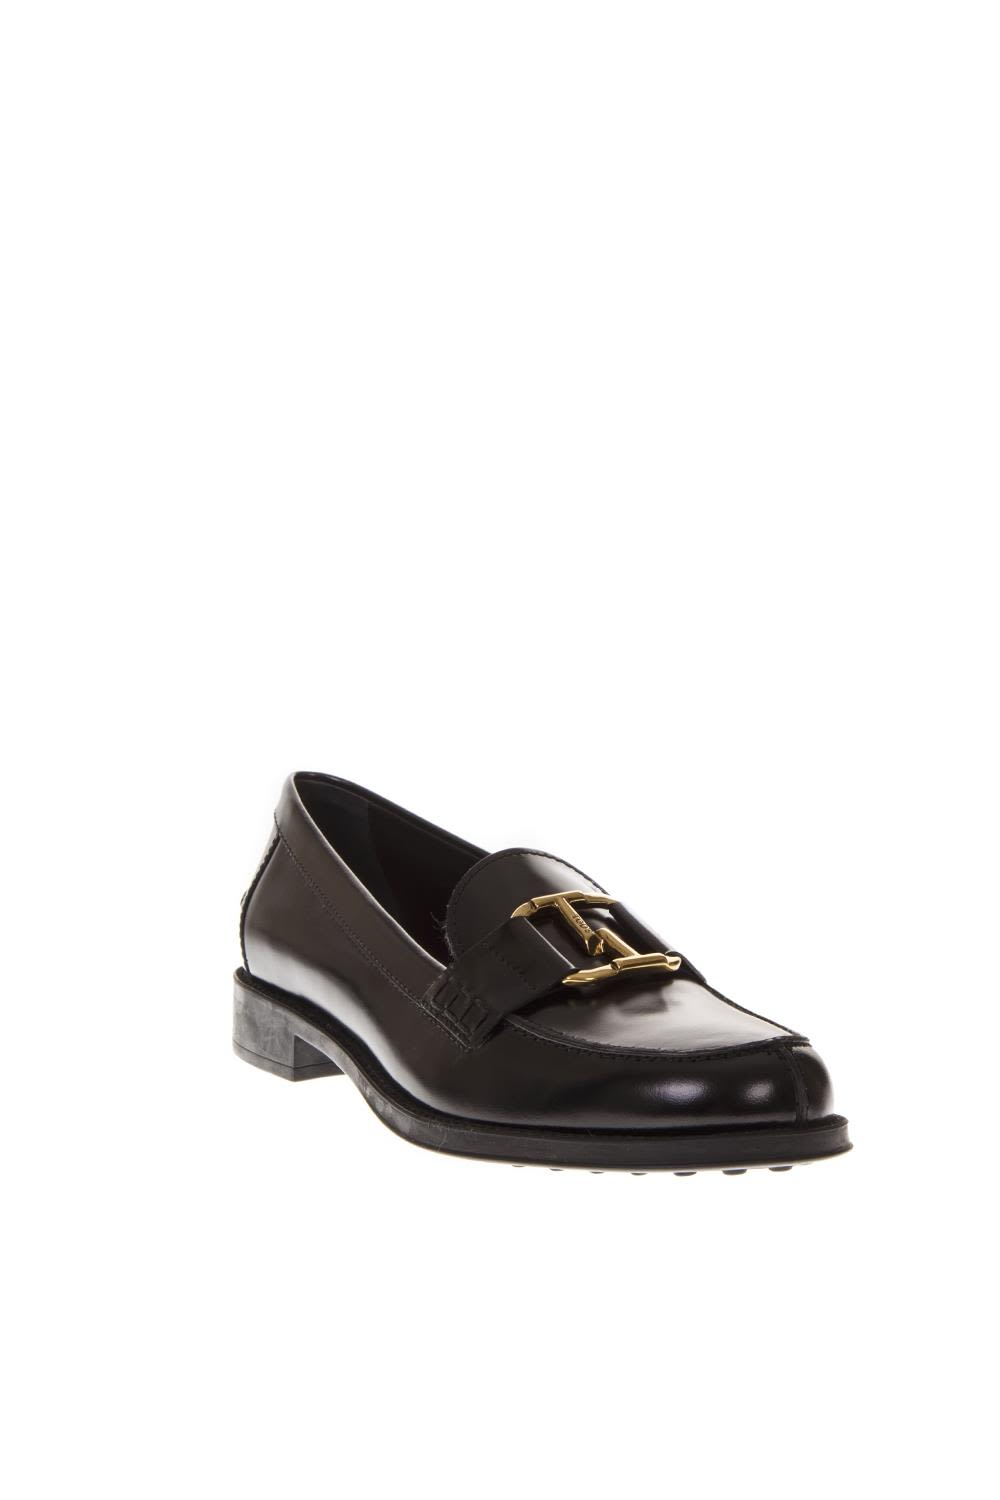 8b41176314e Tod s Black Leather Loafers - Black Tod s Black Leather Loafers ...